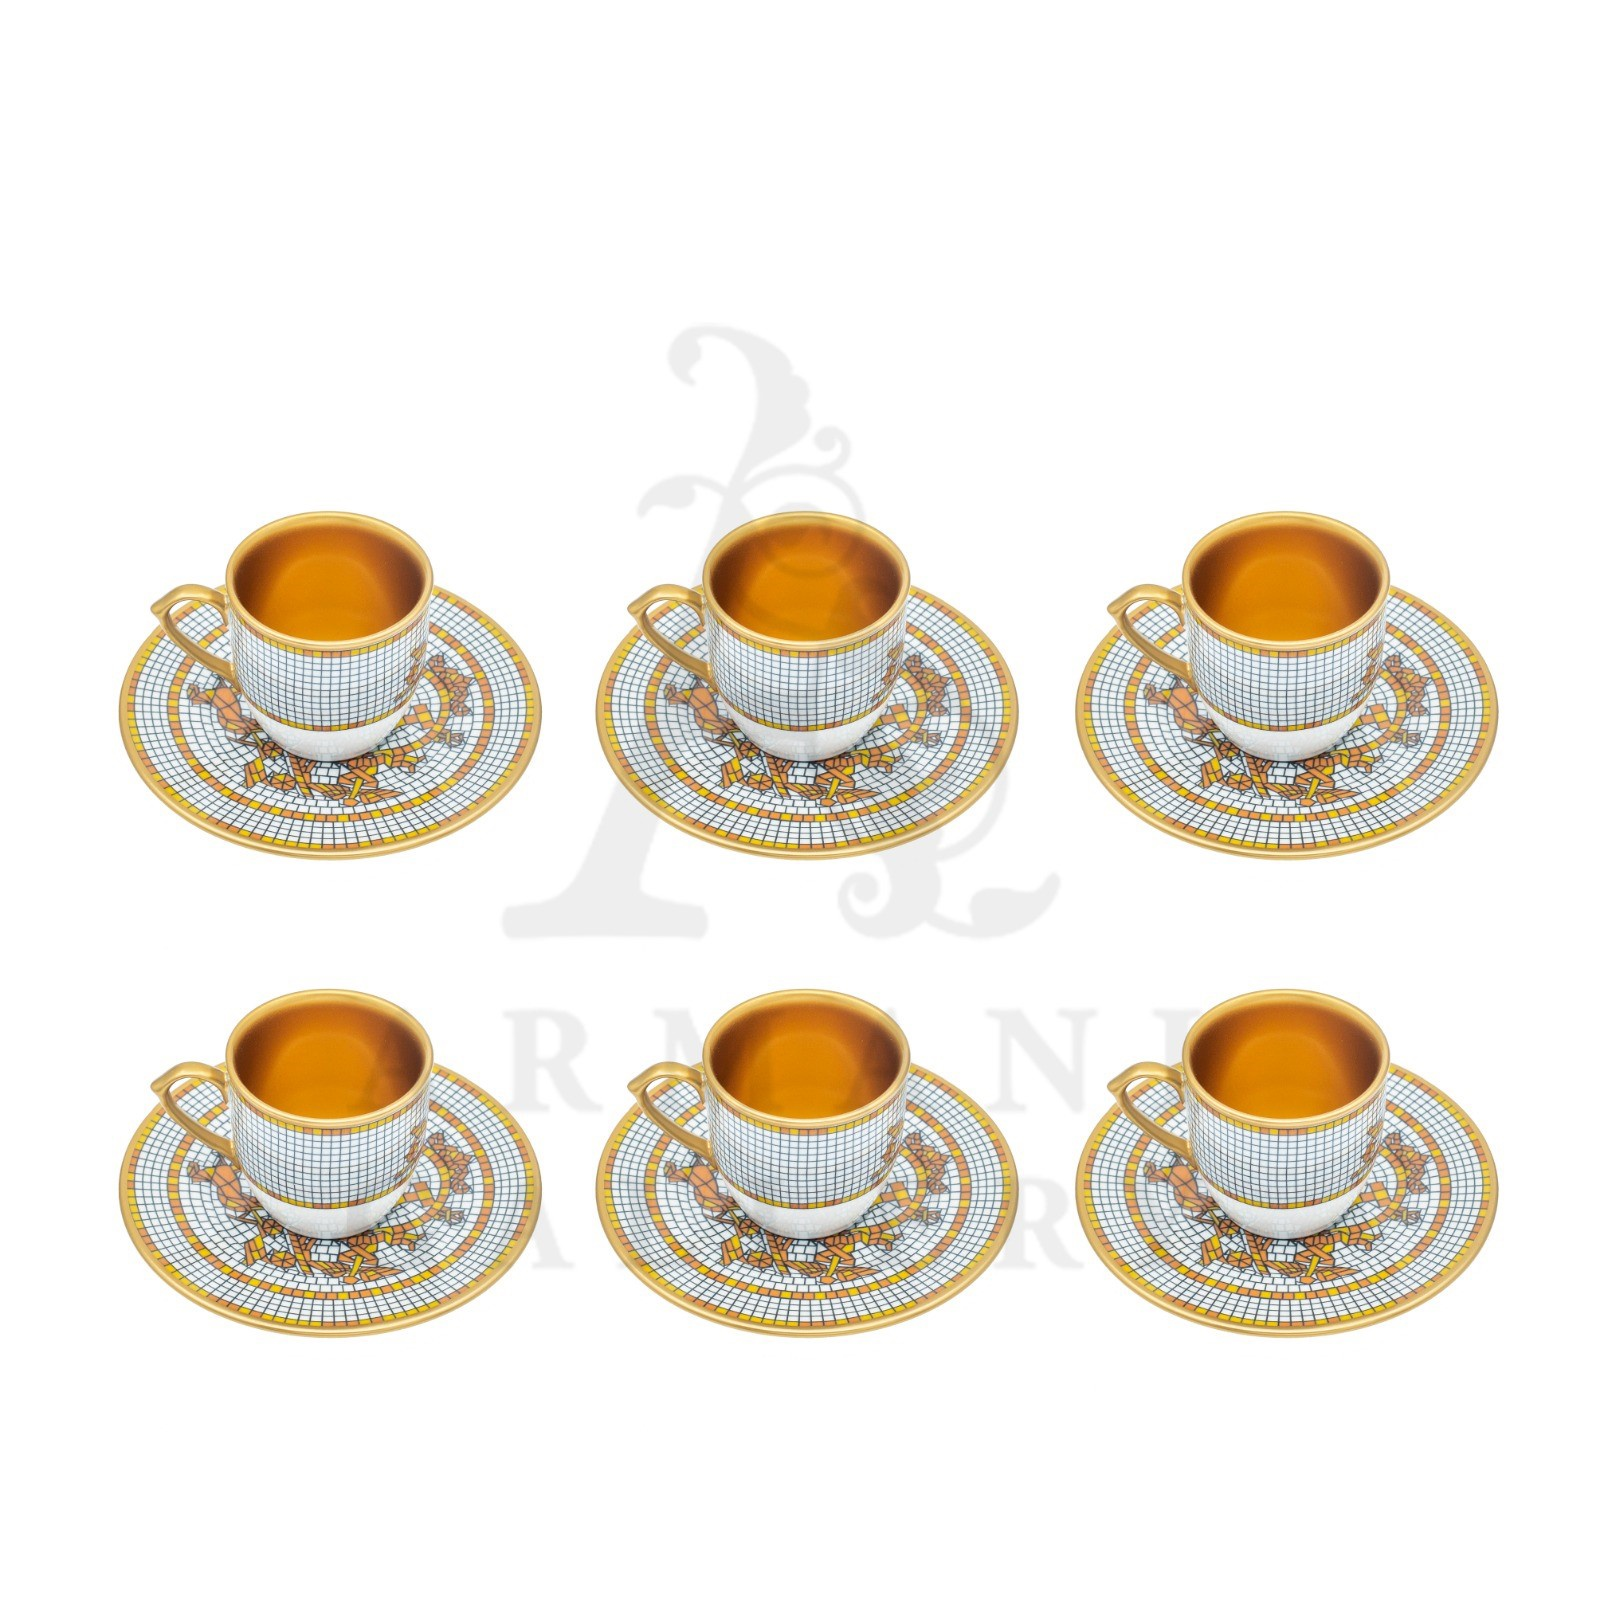 Buy Turkish Coffee Set Hermes Horse Grey and Gold 12 Pcs